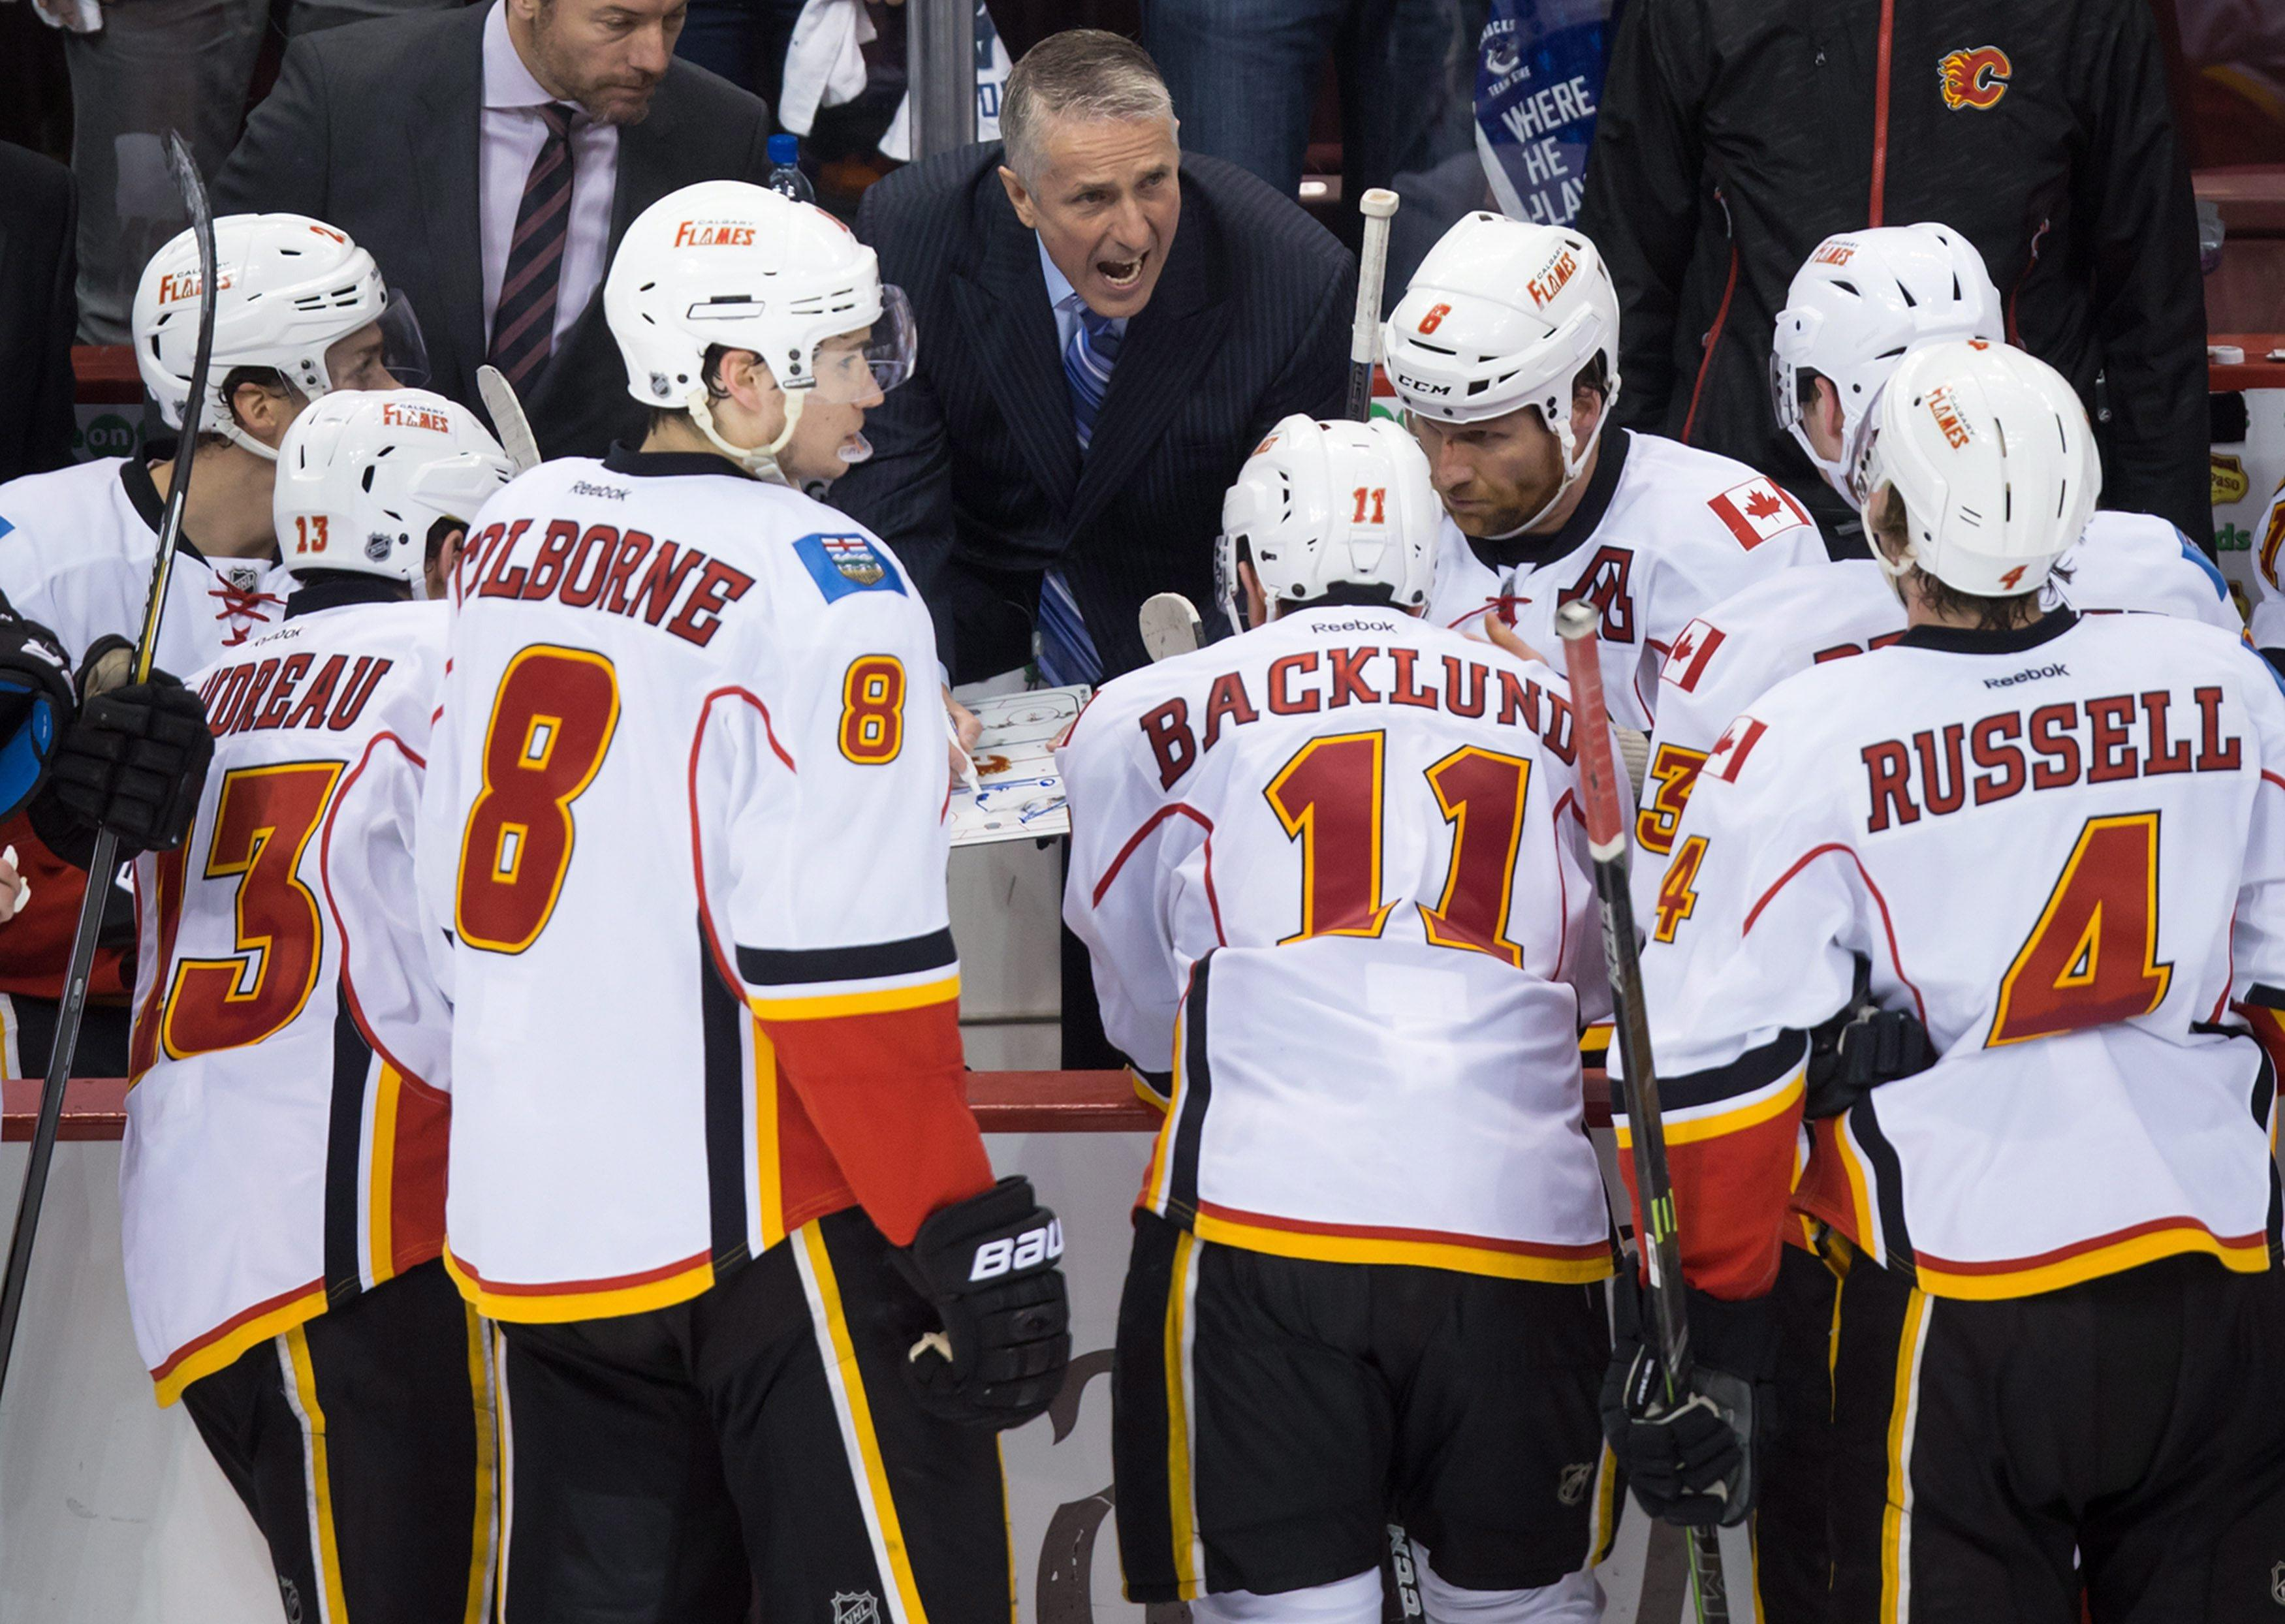 Canucks-Flames Preview